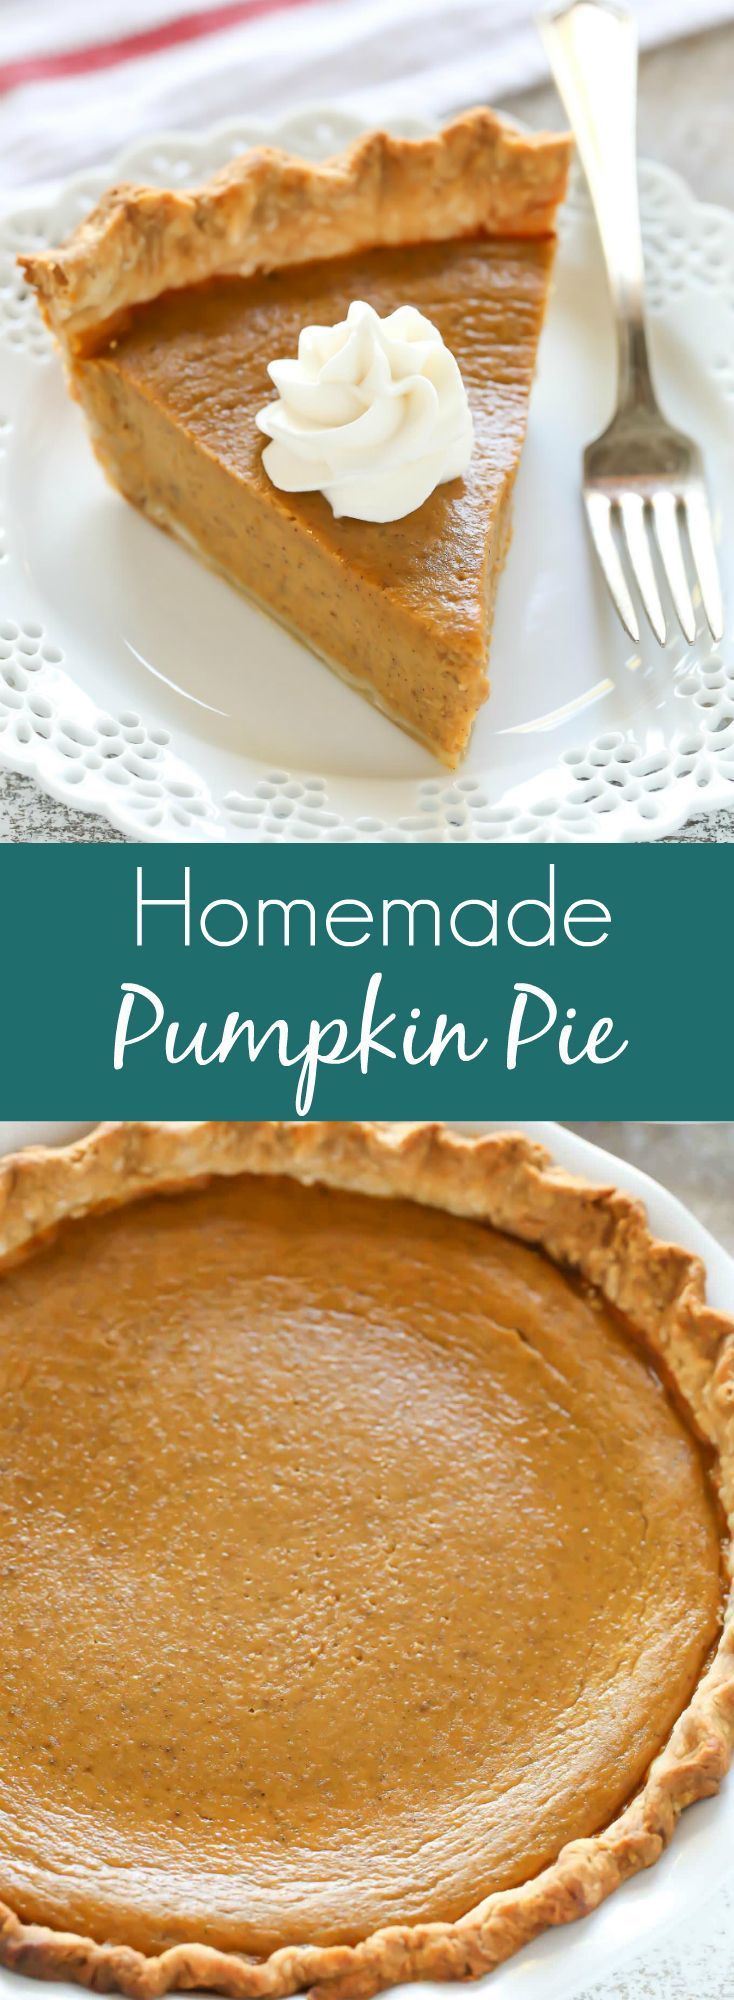 An easy and delicious recipe for Homemade Pumpkin Pie. This is the only pumpkin pie recipe you will ever need and it's perfect for the holidays! (easy pie recipes)